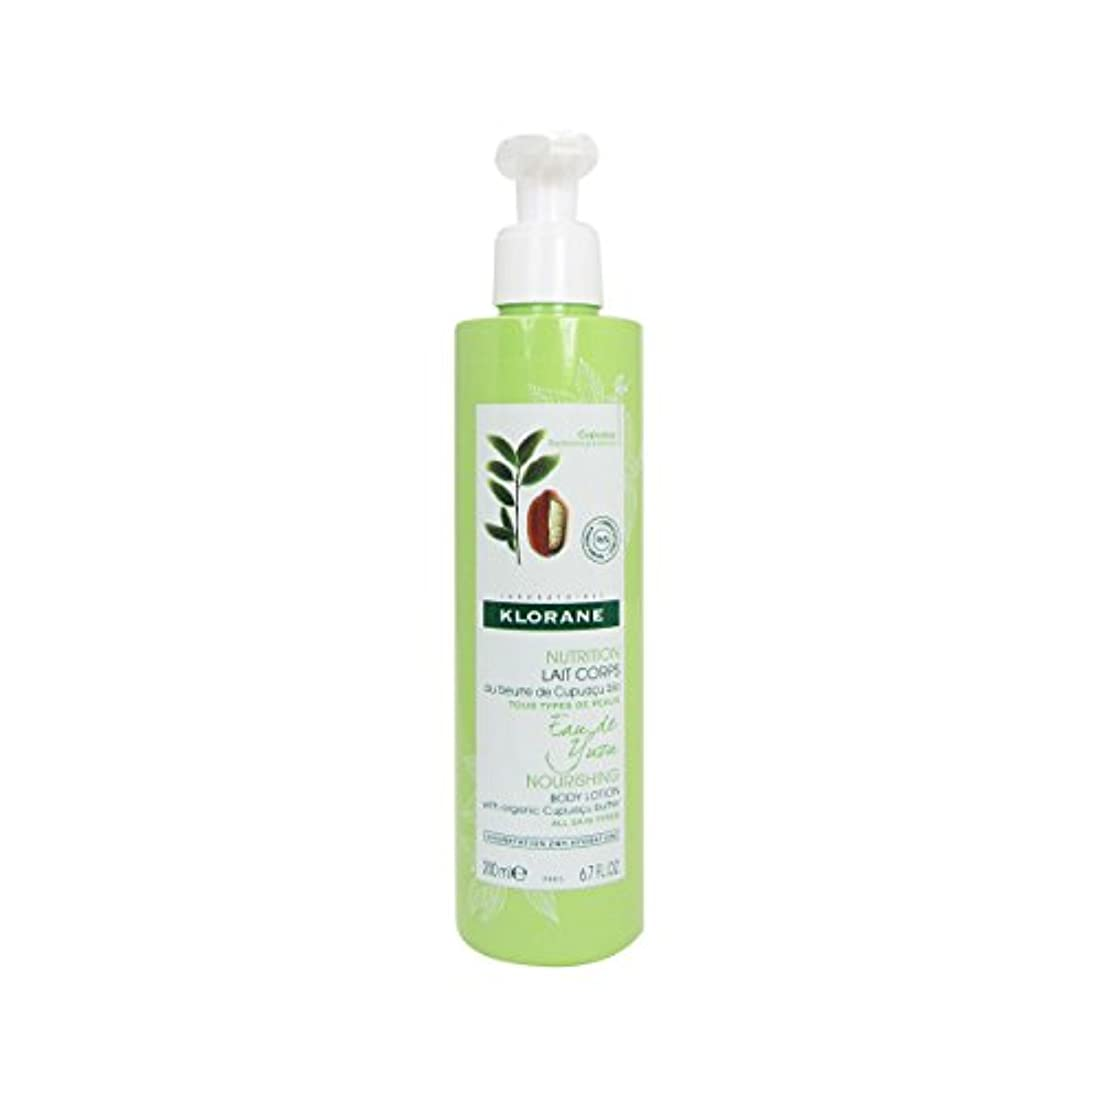 Klorane Nutrition Yuzu Water Body Milk 200ml [並行輸入品]